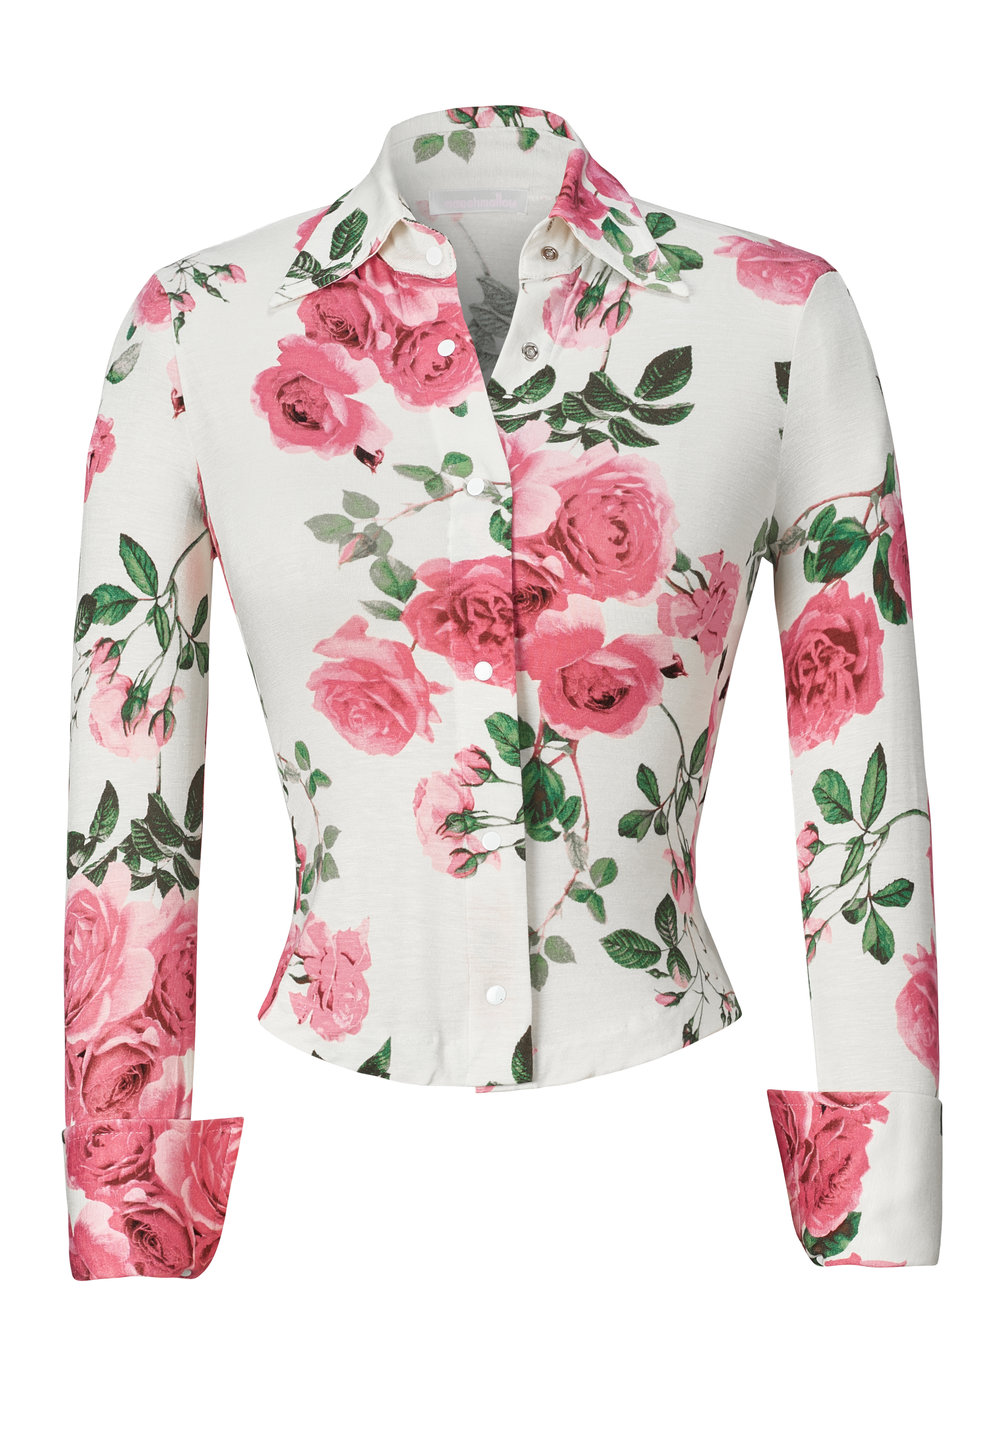 The Dream Within Blouse $250